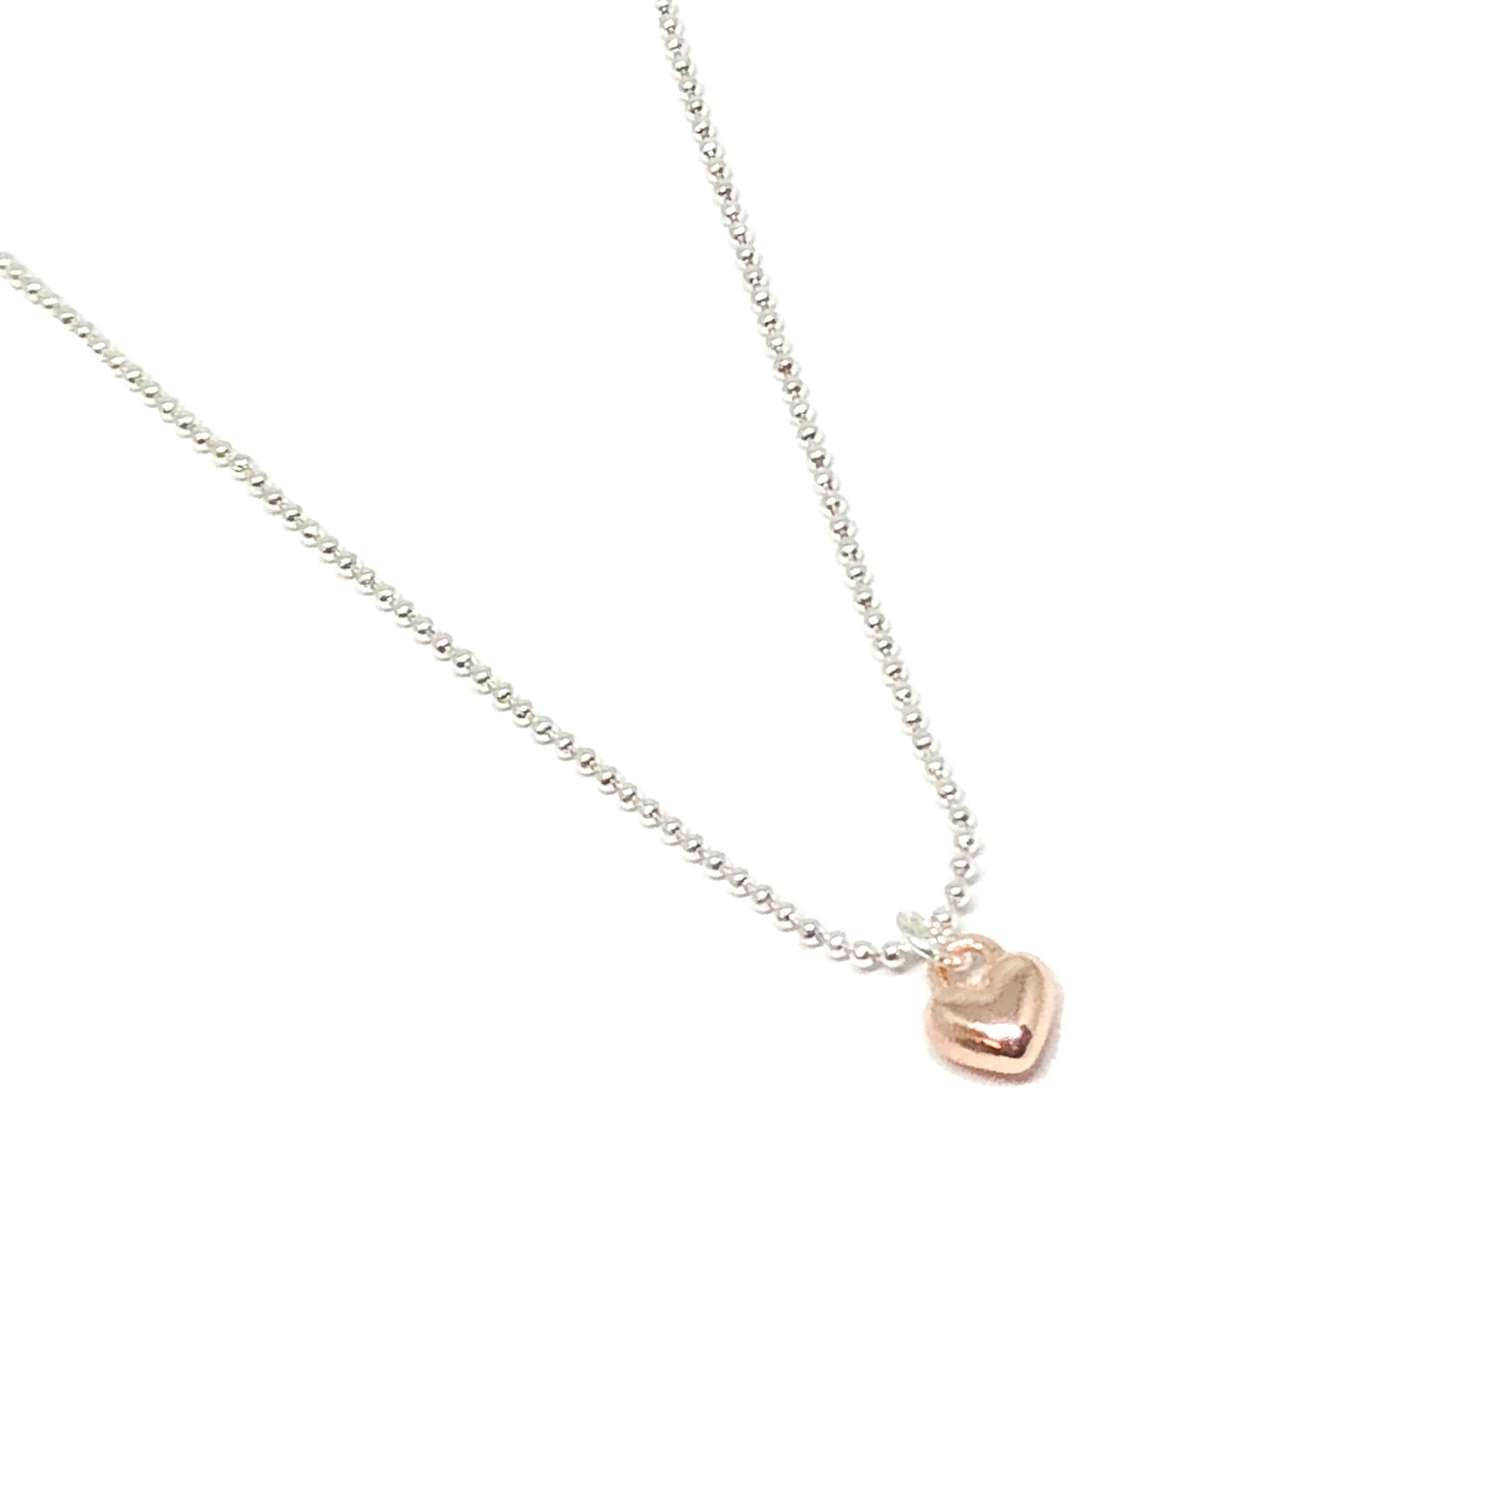 Maisy Mini Heart Necklace - Rose Gold